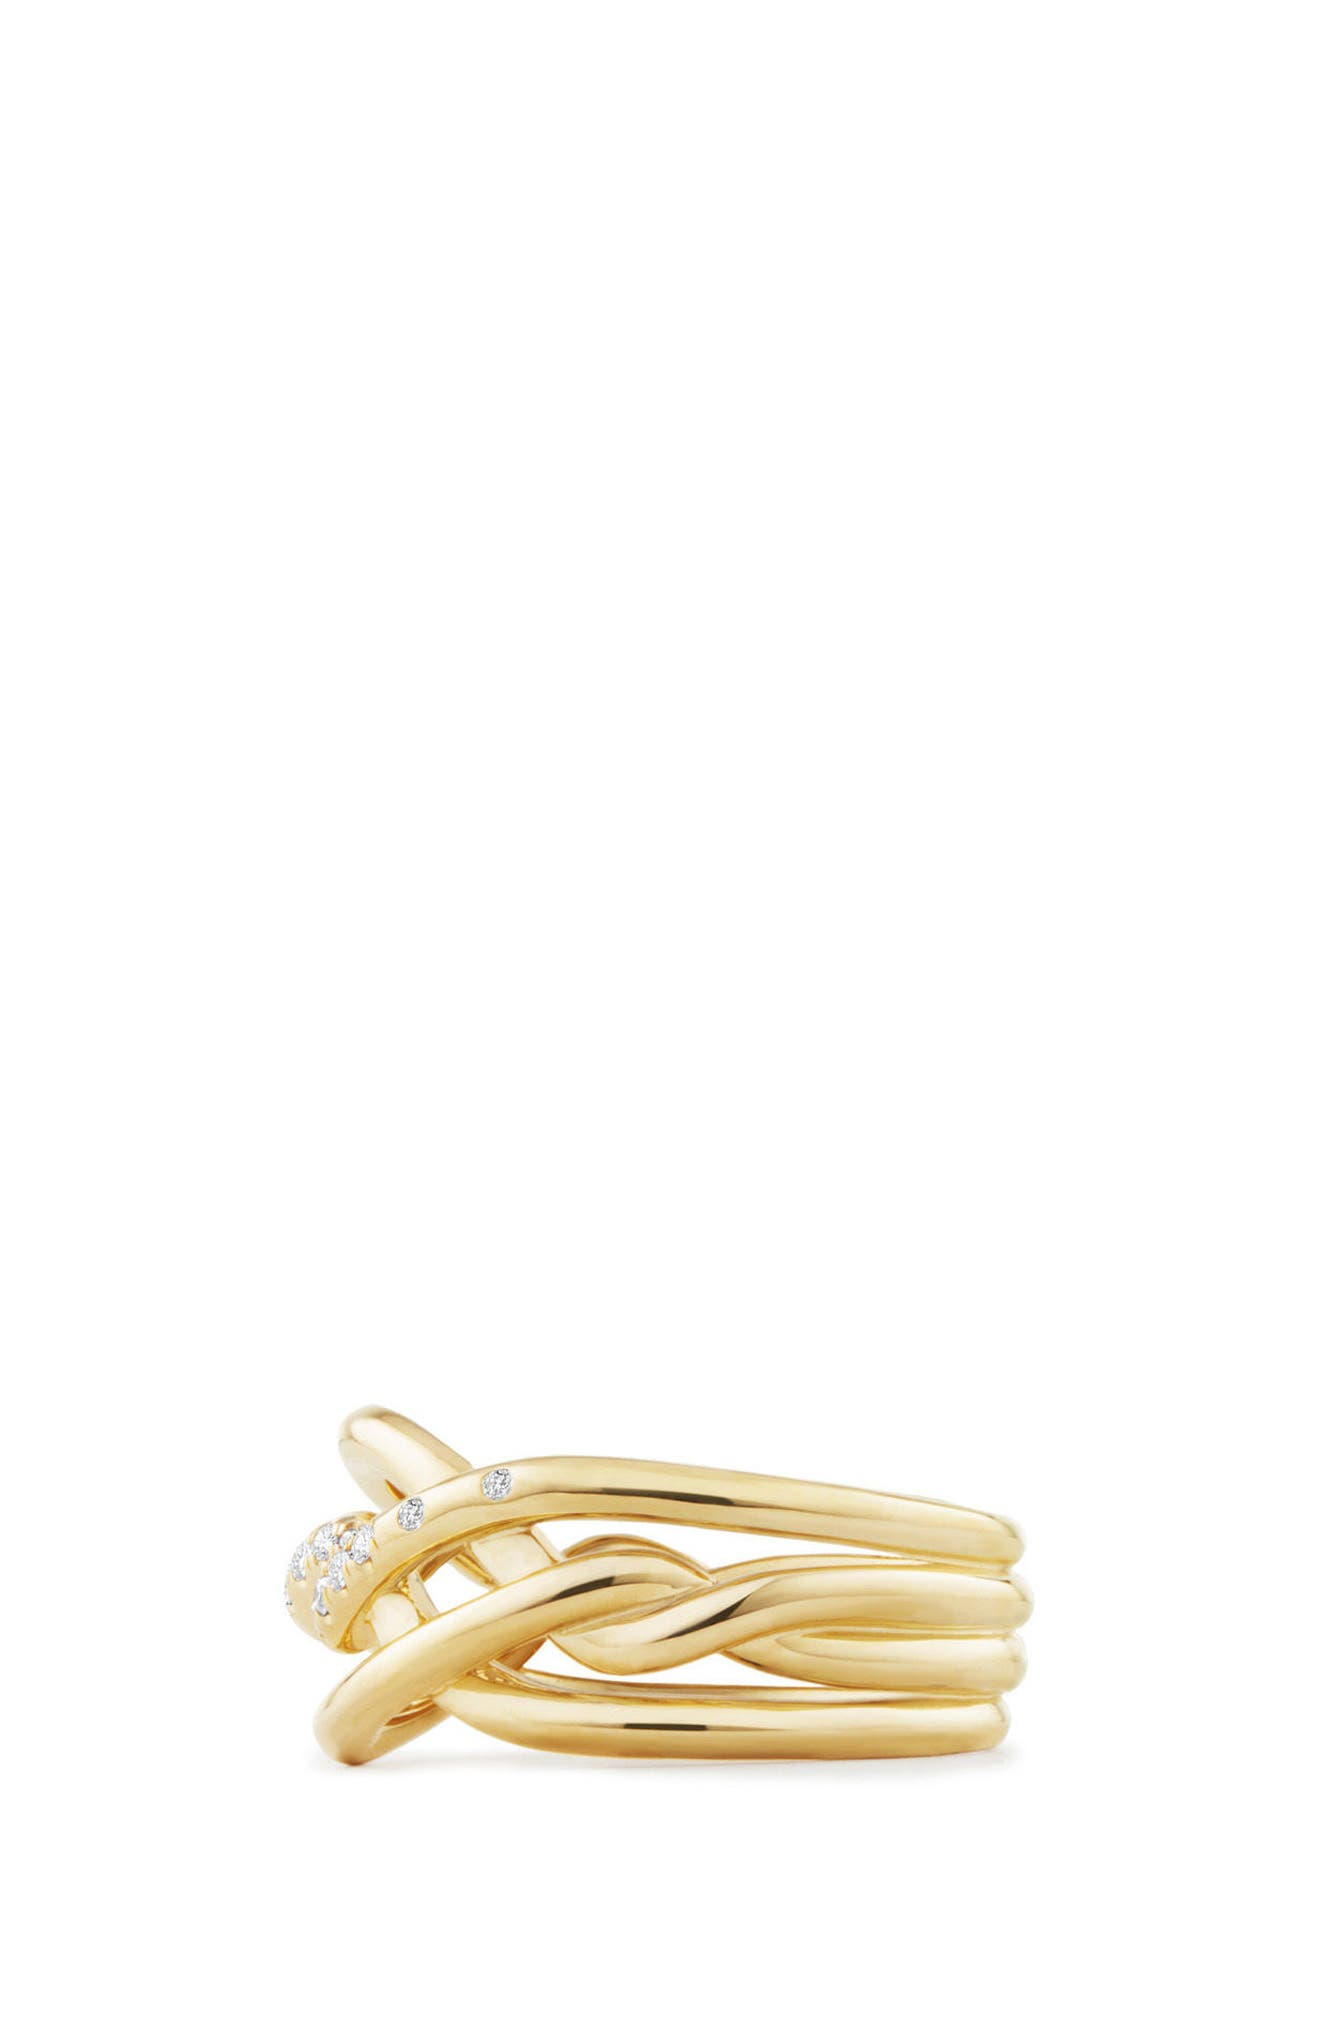 Continuance Ring with Diamonds in 18K Gold, 11.5mm,                             Alternate thumbnail 2, color,                             Yellow Gold